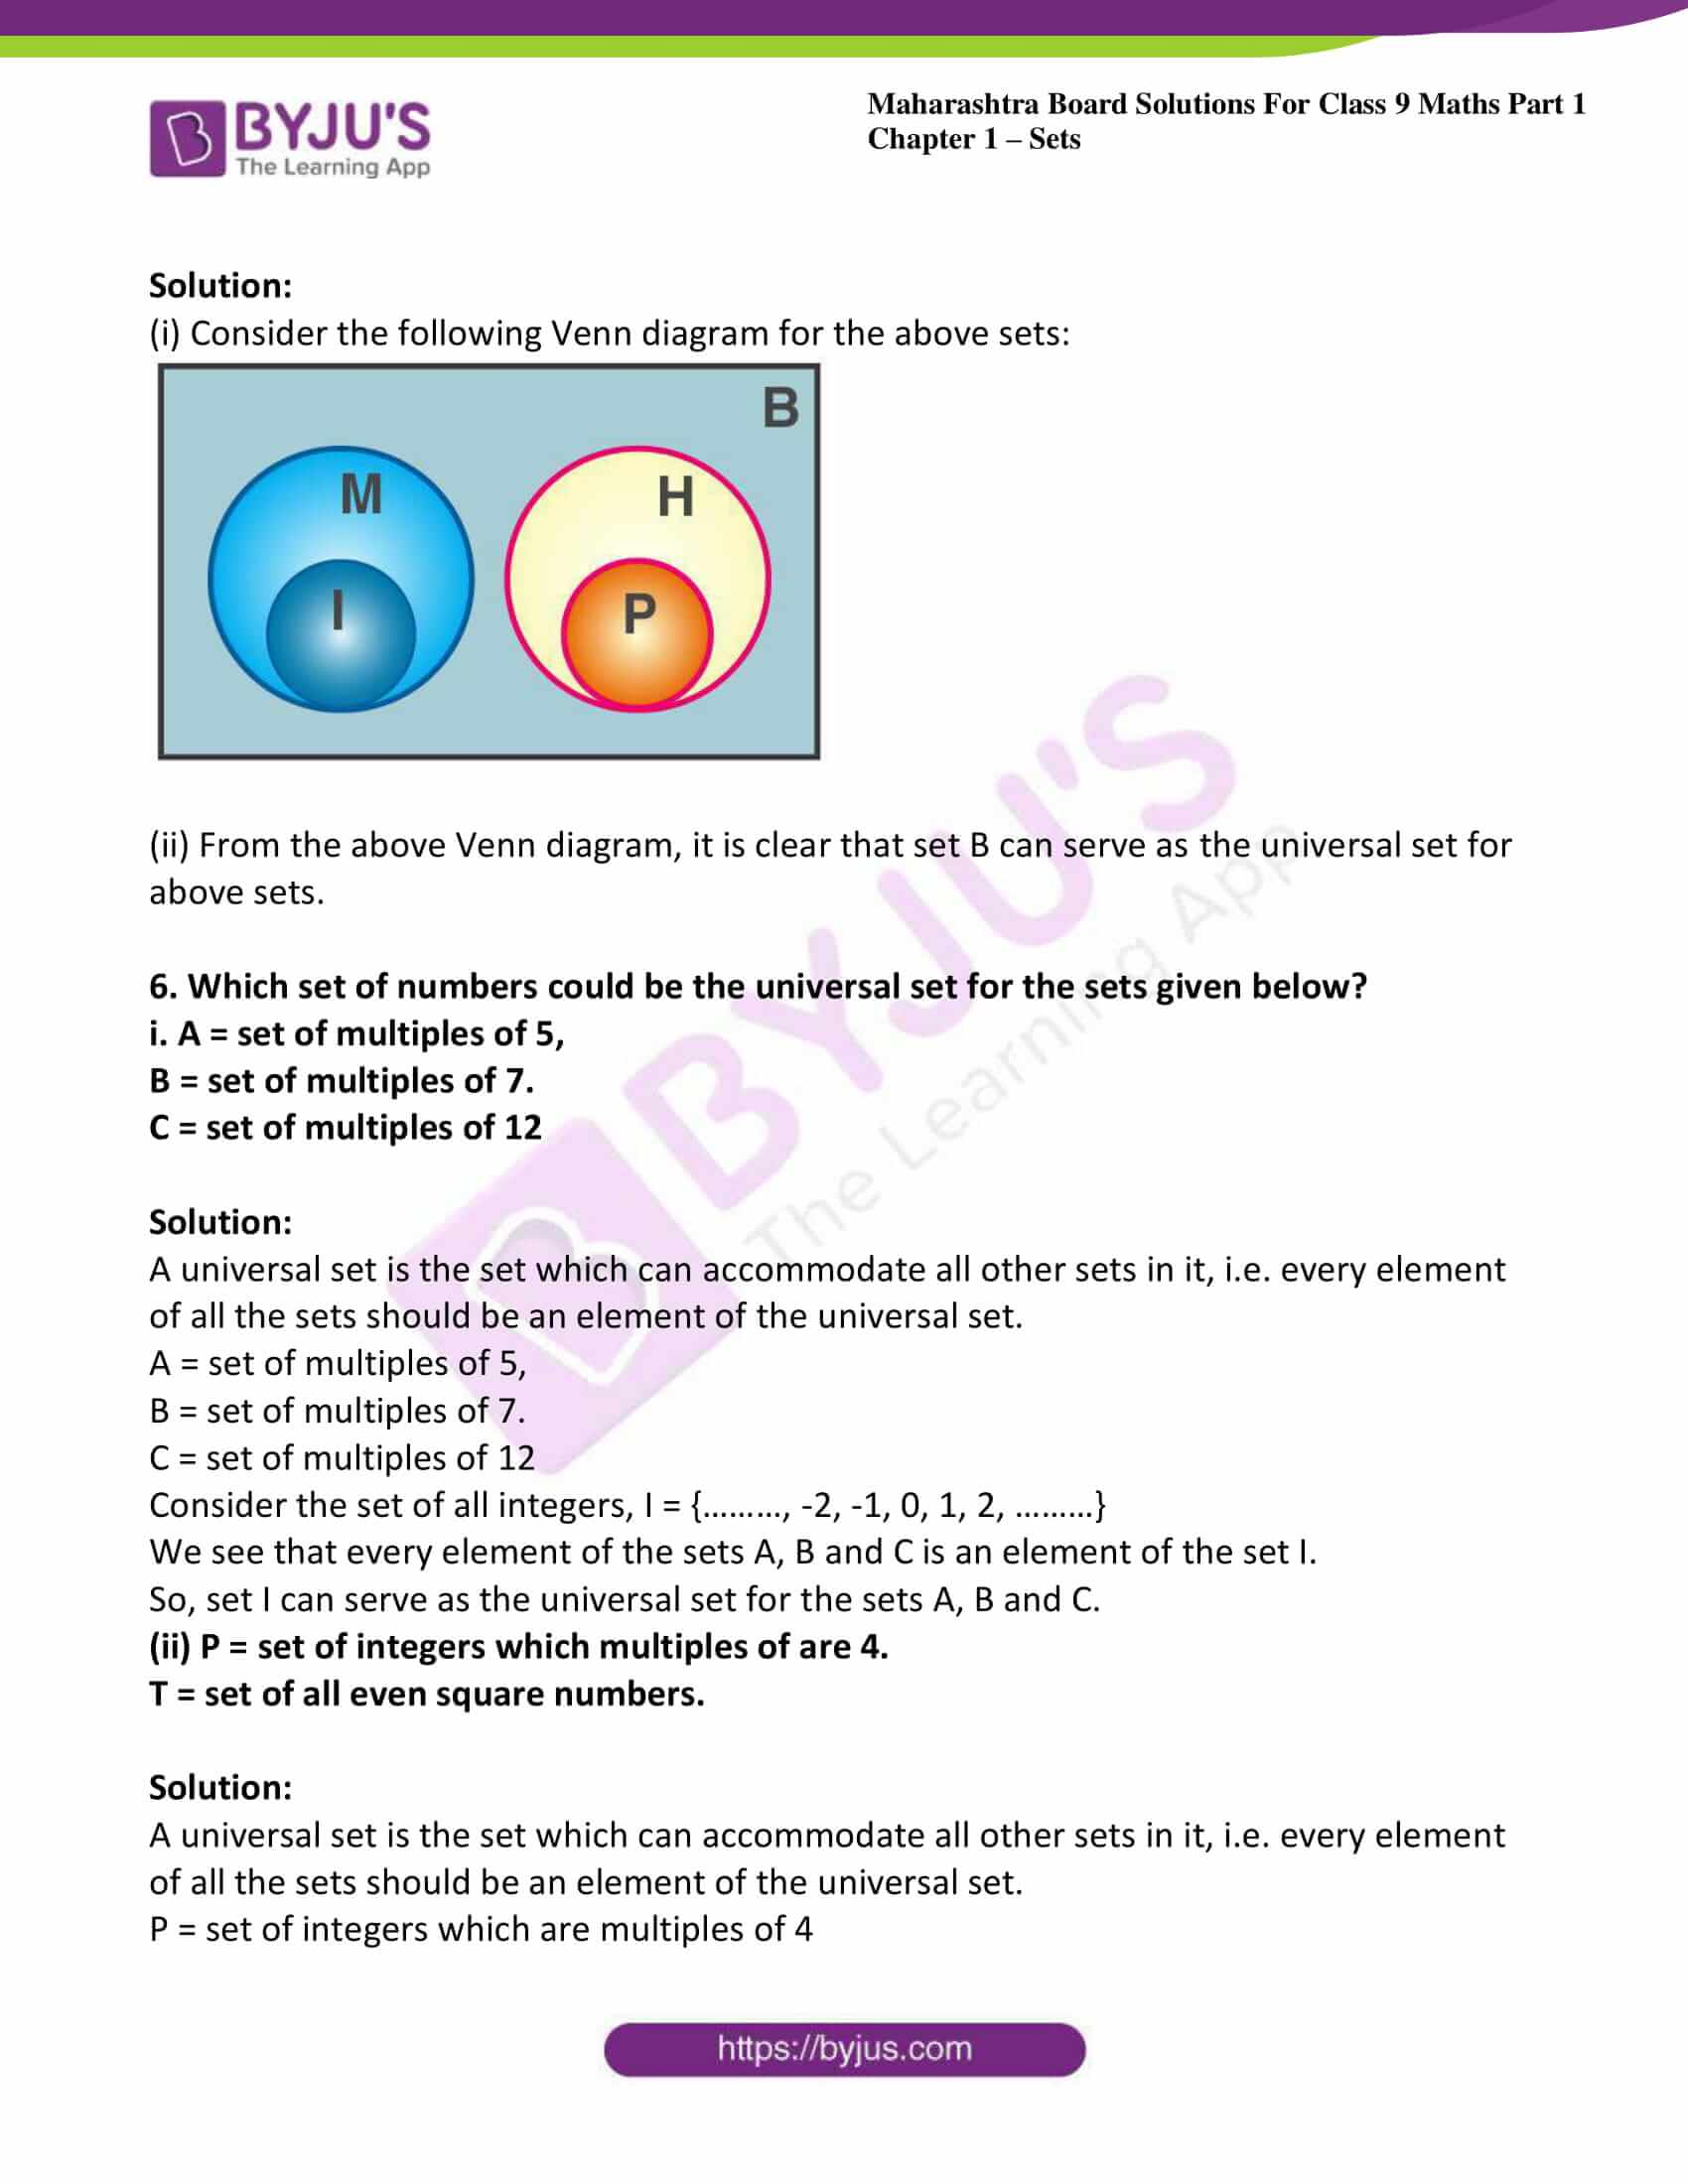 msbshse sol class 9 maths part 1 chapter 1 sets 11